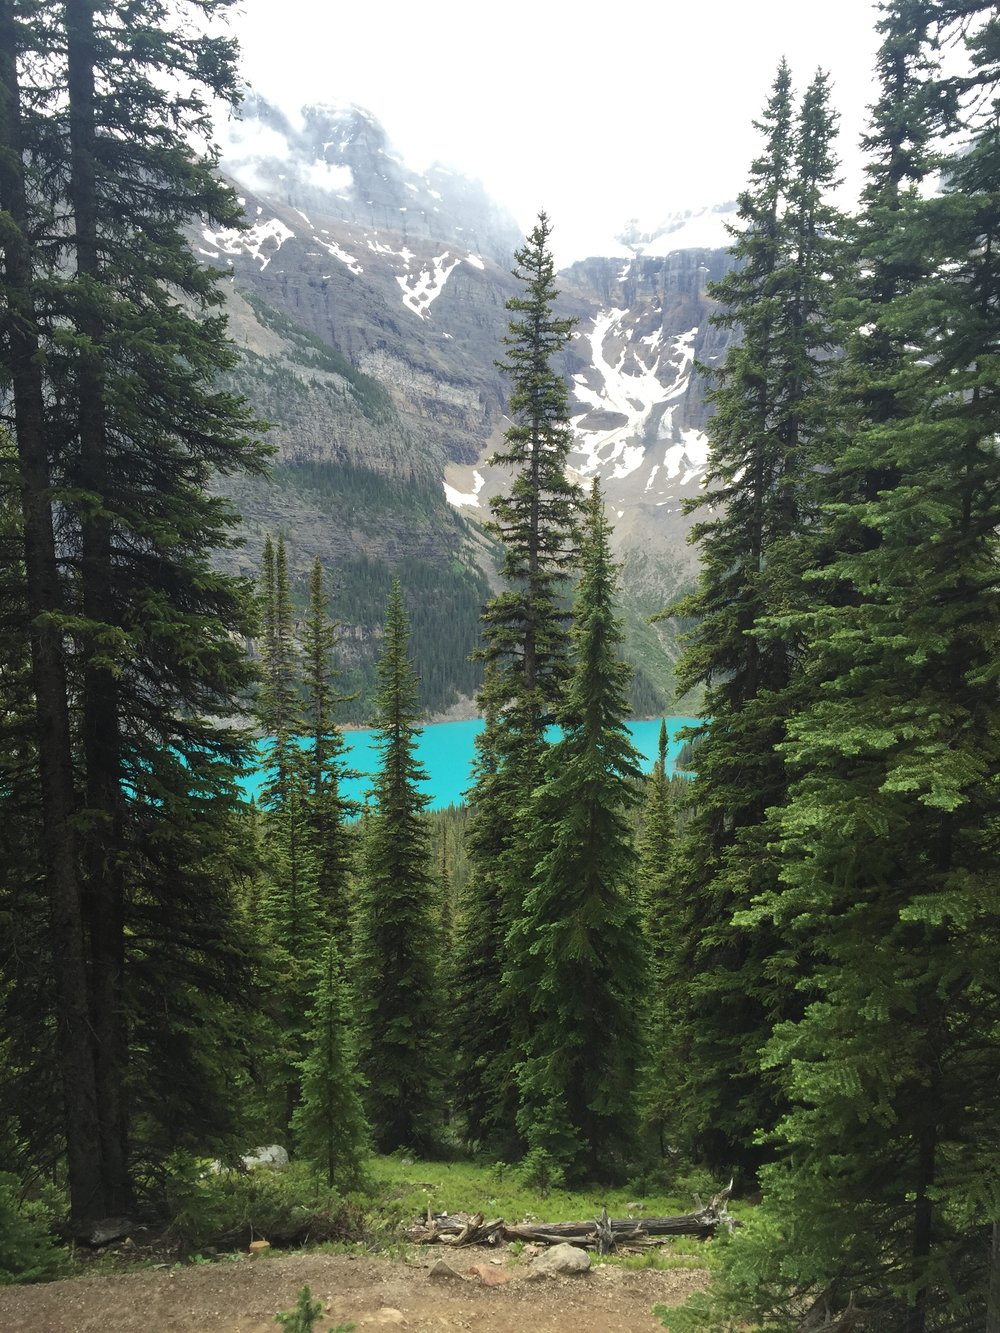 A peek at Moraine Lake from Larch Valley trail